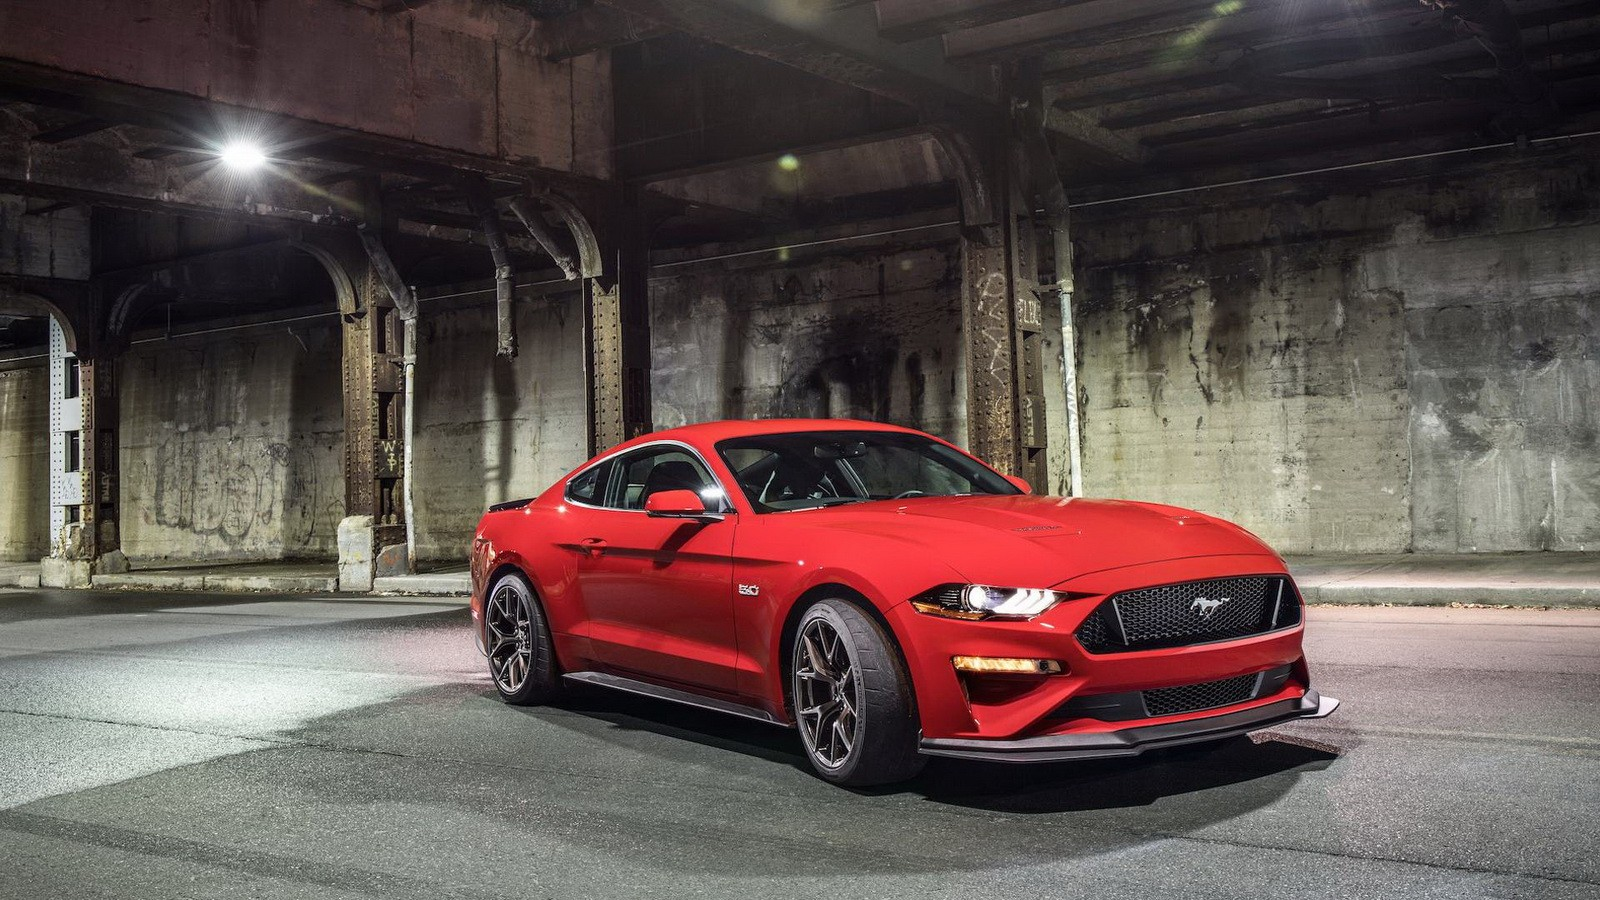 2018 Ford Mustang Gt Dyno Pull Reveals Coyote V8 Produces 415 Rwhp